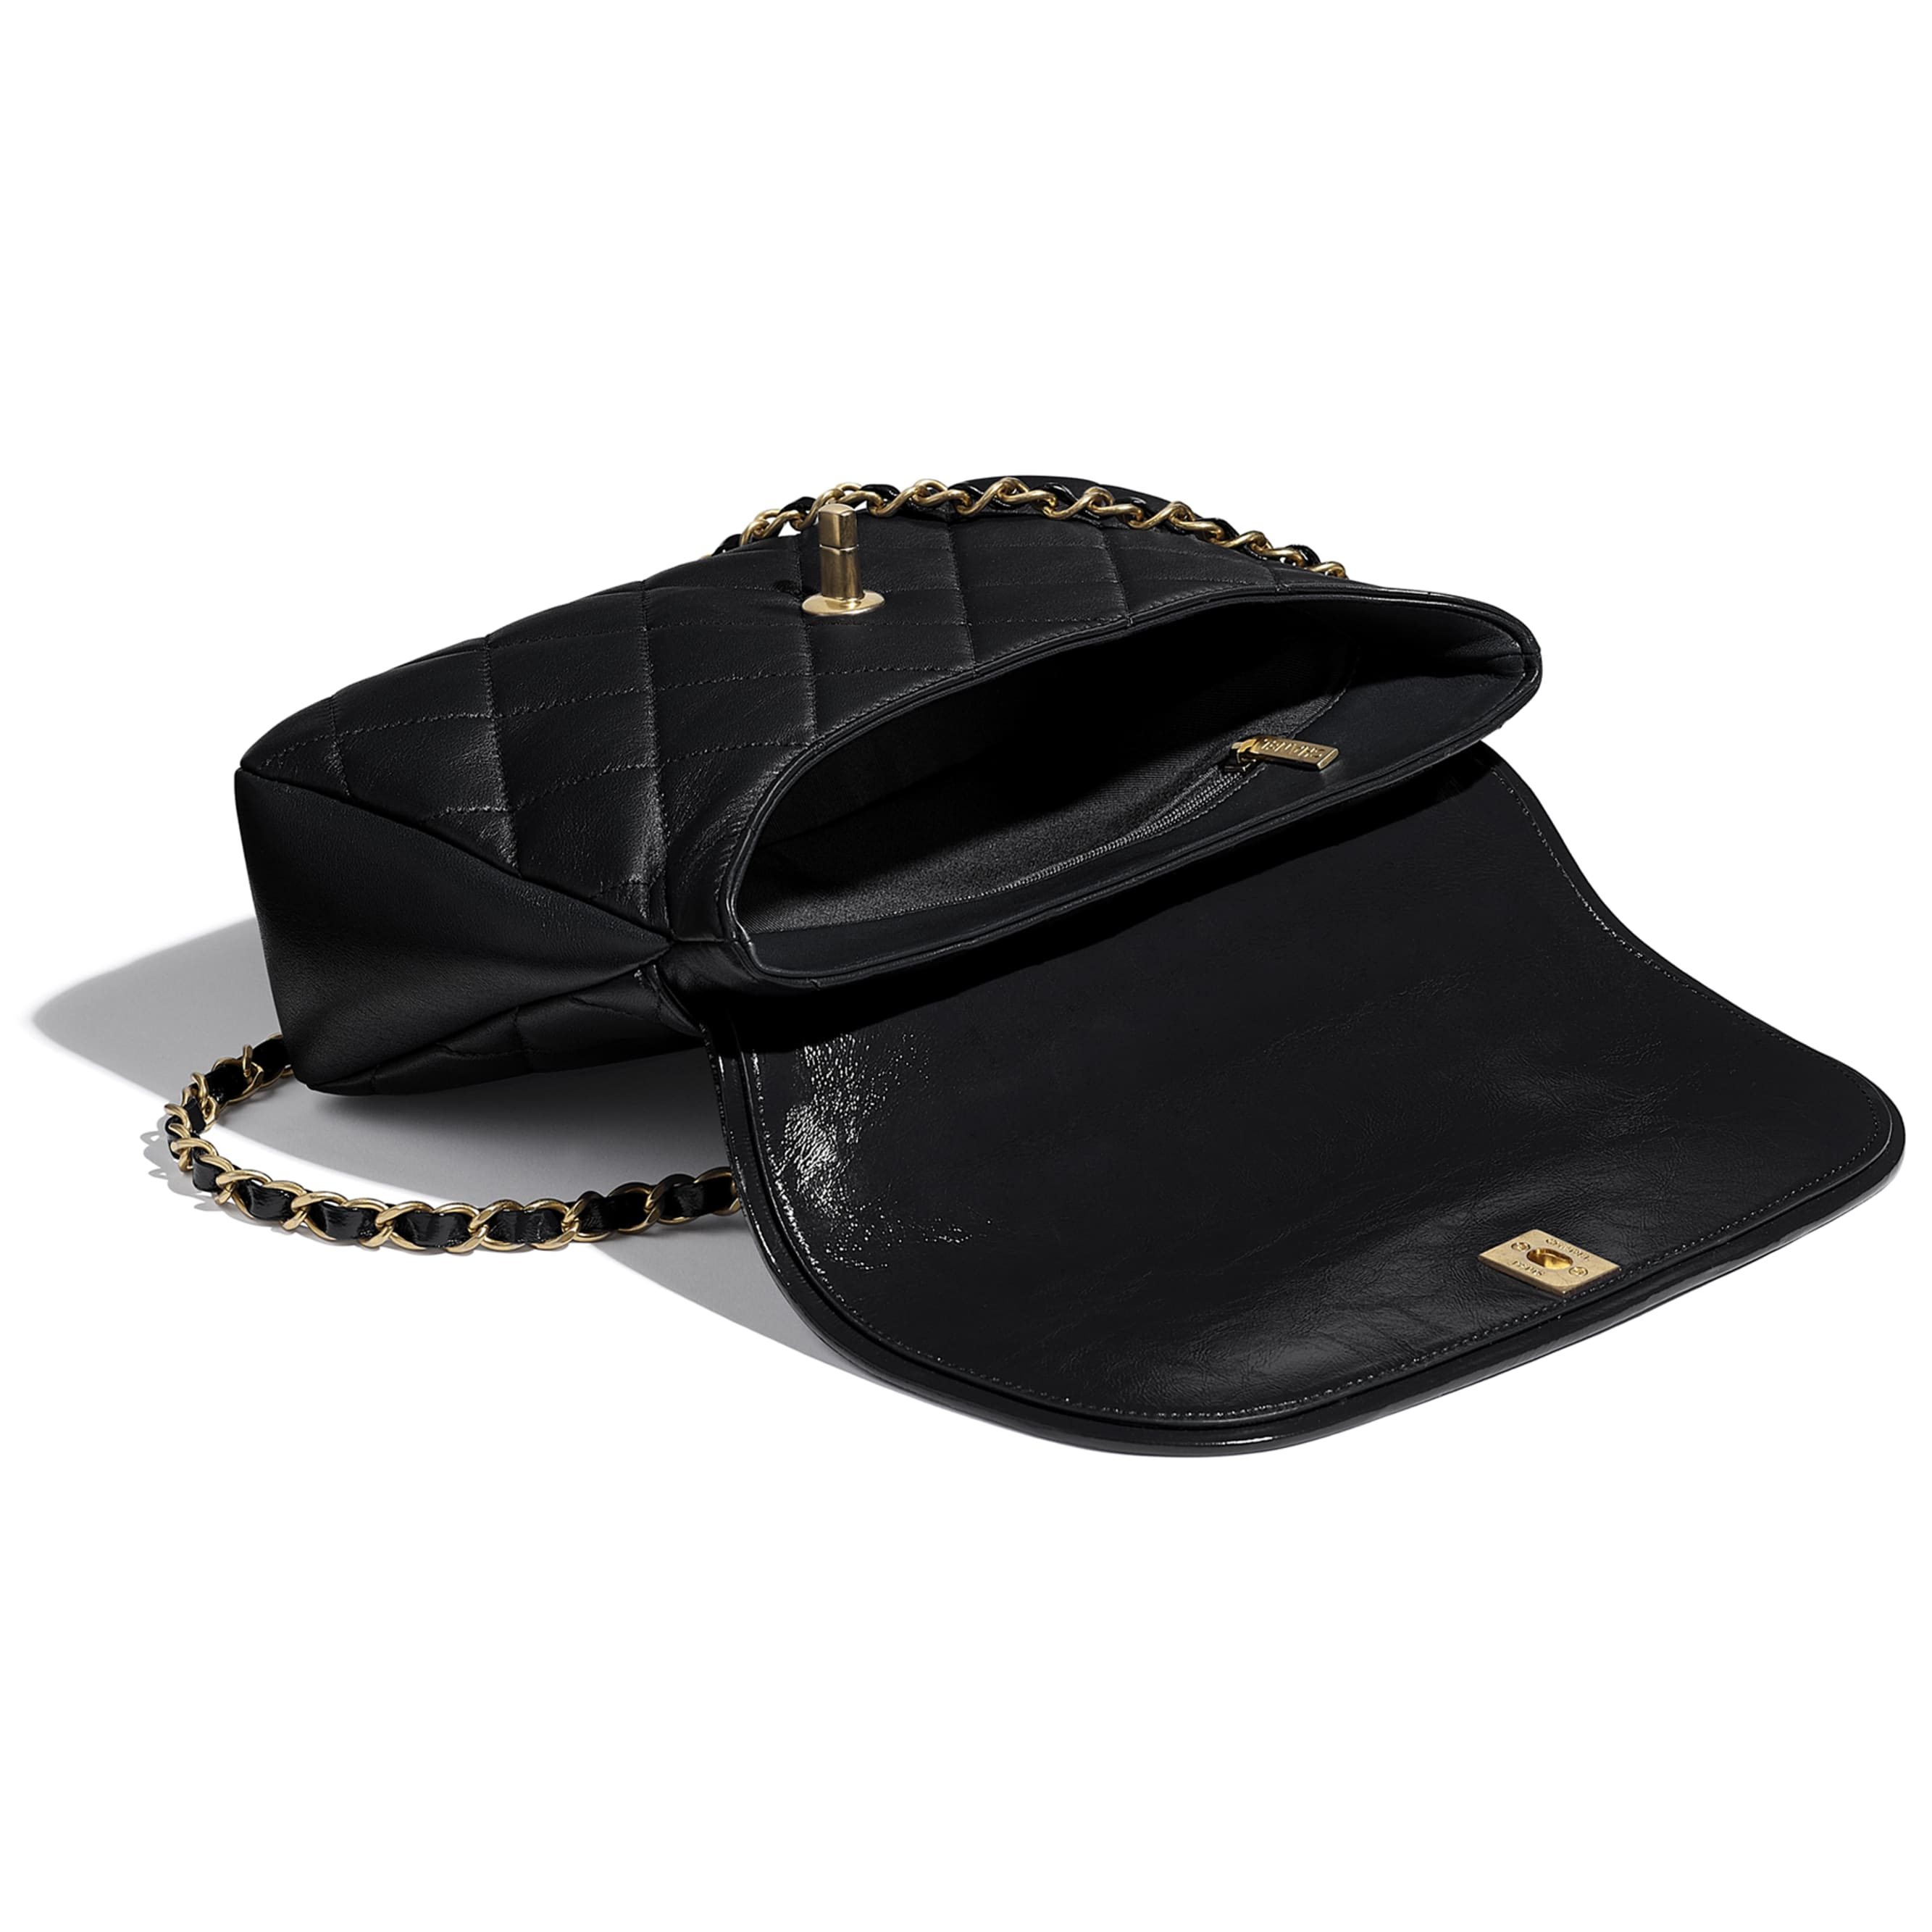 Large Flap Bag With Top Handle - Black - Lambskin, Shiny Crumpled Calfskin & Gold-Tone Metal - CHANEL - Other view - see standard sized version